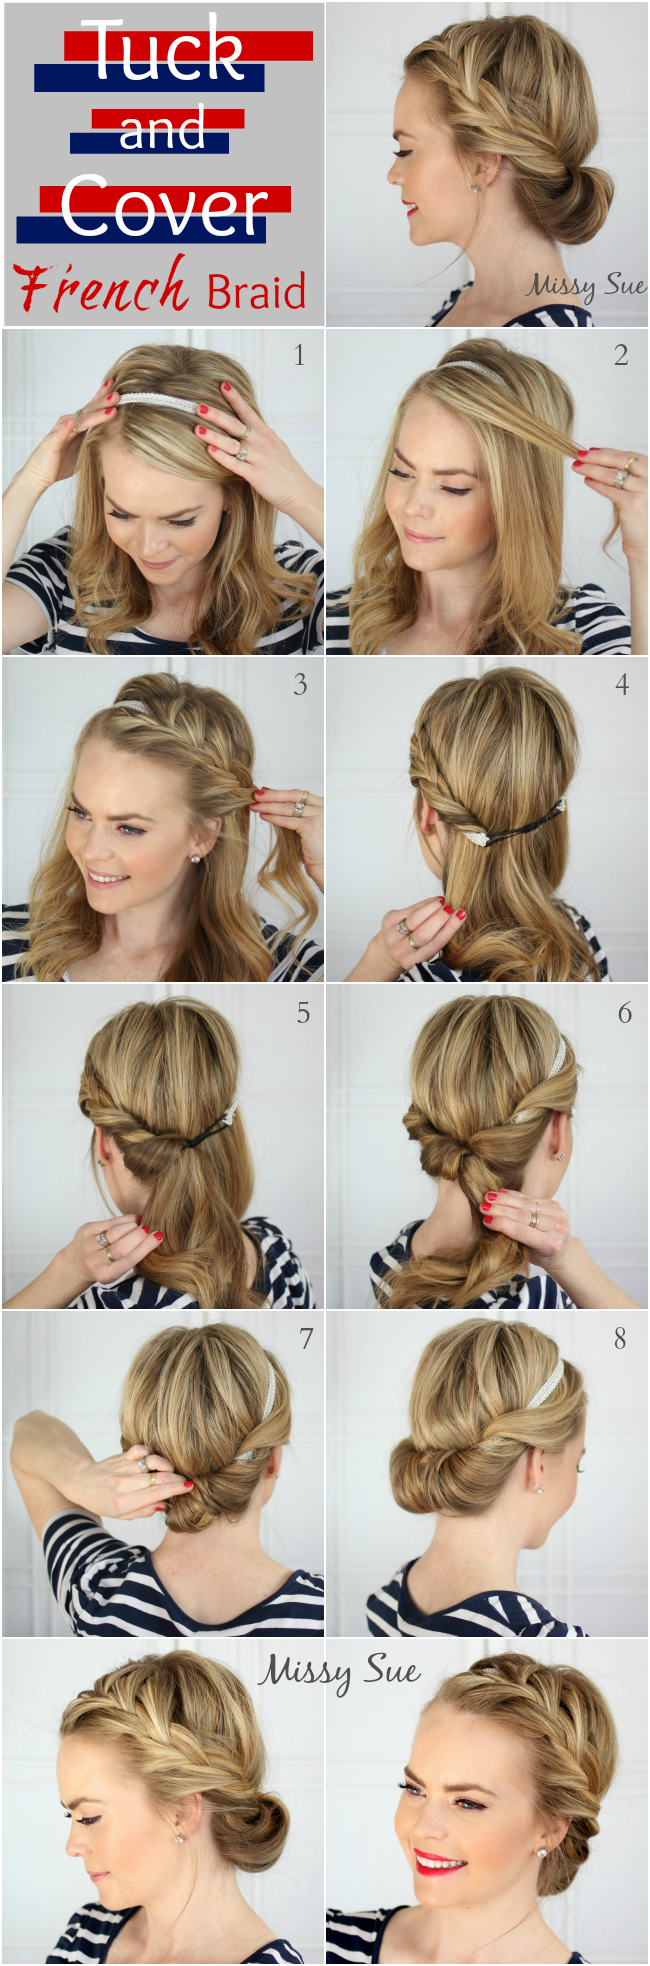 Tuck And Cover French Braid  This Looks Impossibly Difficult But Maybe  There's